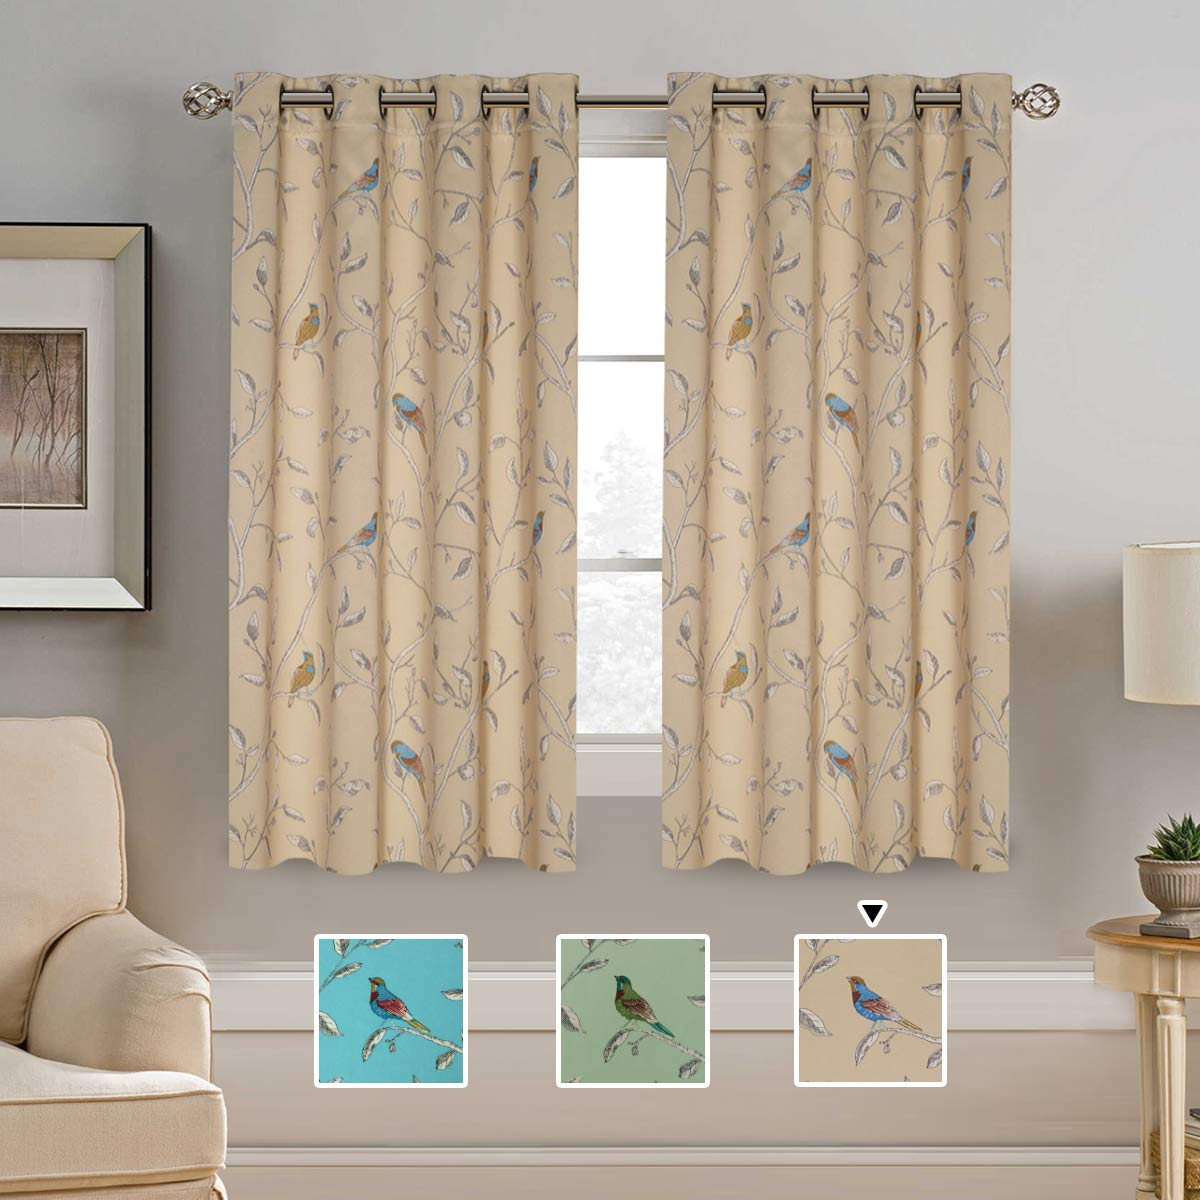 Thermal Insulated Room Darkening Curtains for Living Room Blackout Window Treatment Grommet Panels for Bedroom/Dining Room, Birds Pattern on Taupe Base - 2 Panels - 52 by 63 inch Each Panel